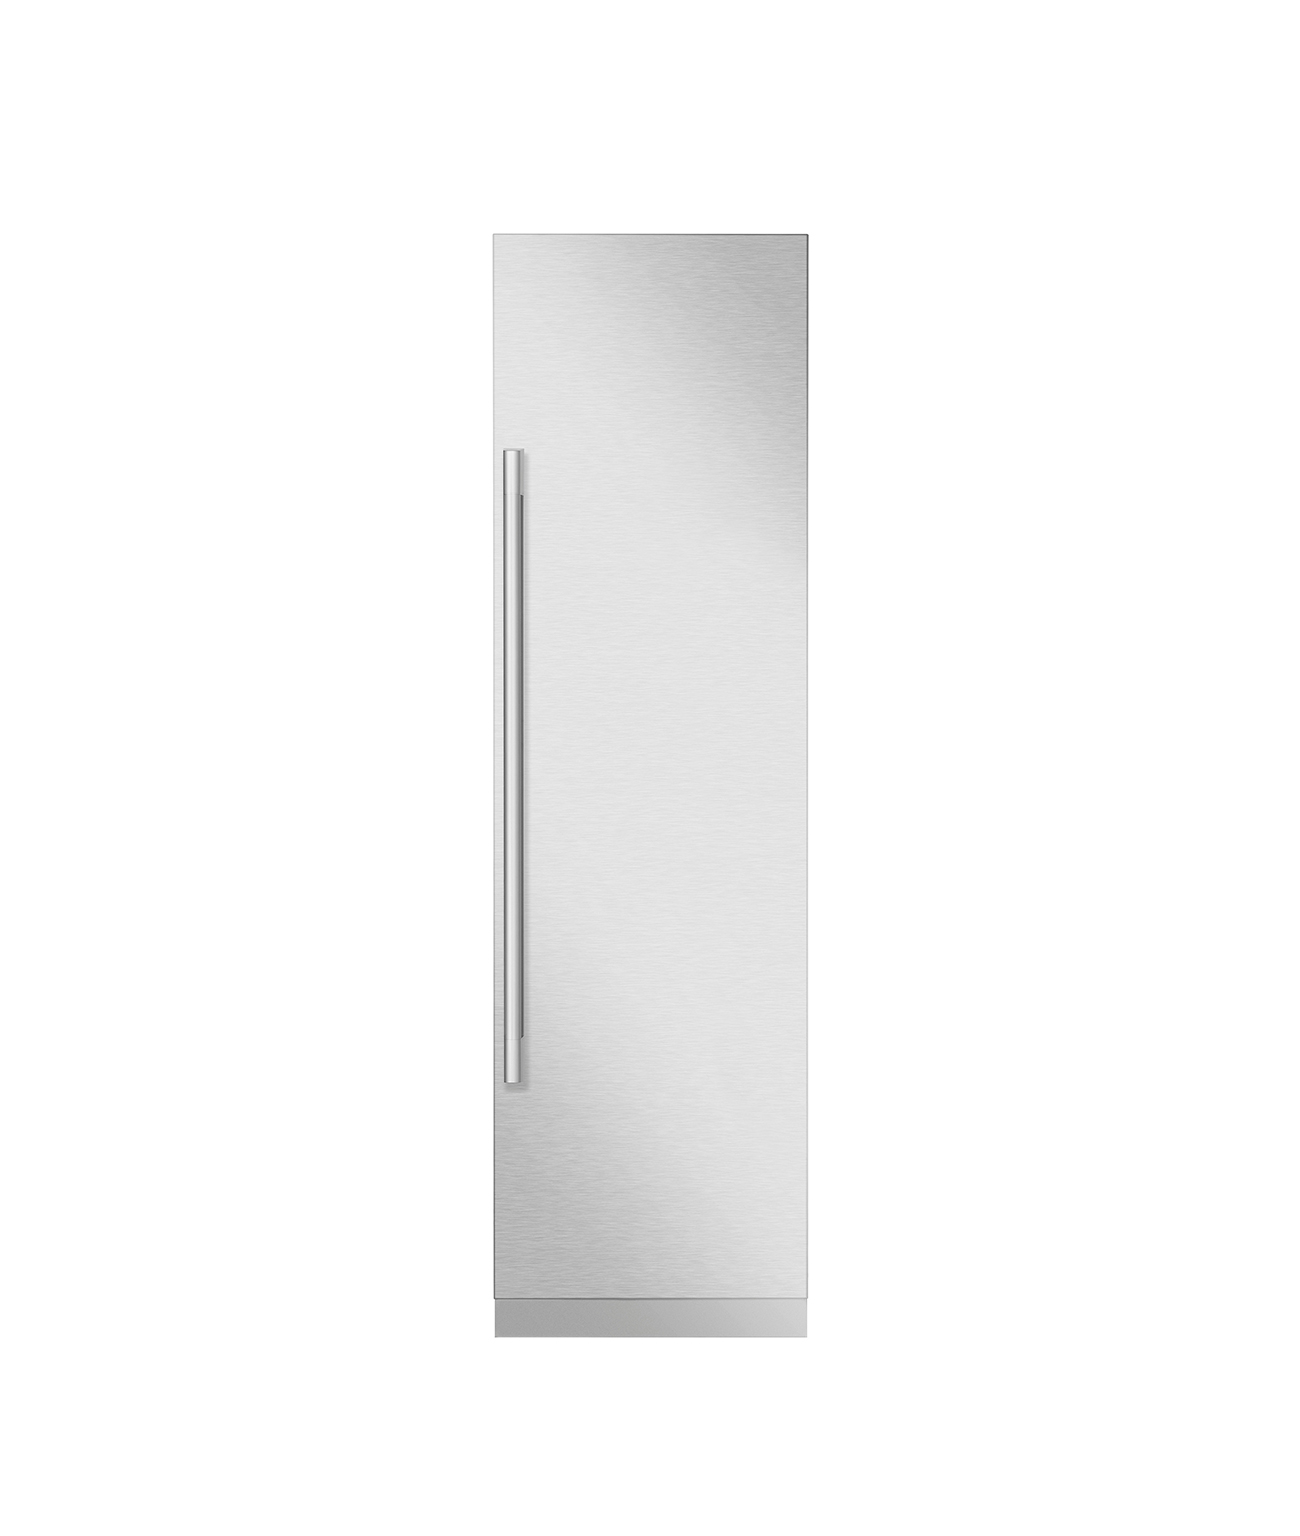 24-inch Integrated Column Refrigerator | Signature Kitchen Suite